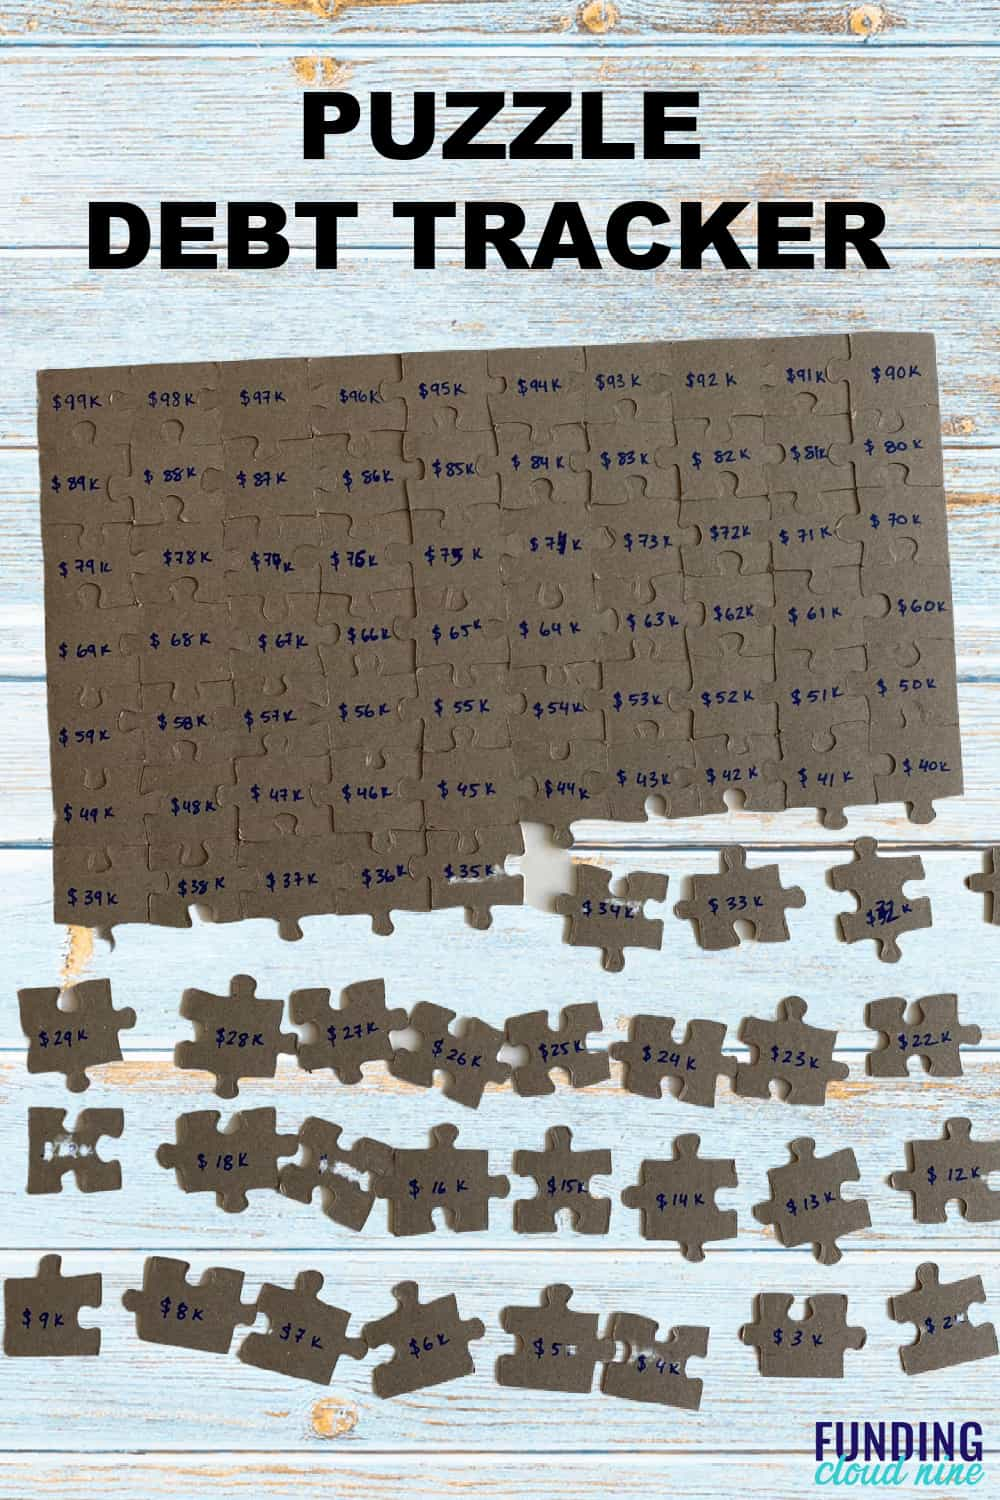 Piece together your debt-free journey with this puzzle debt tracker. Each piece represents a portion of your debt. Stay motivated as you work on paying off your debt and finishing your puzzle.